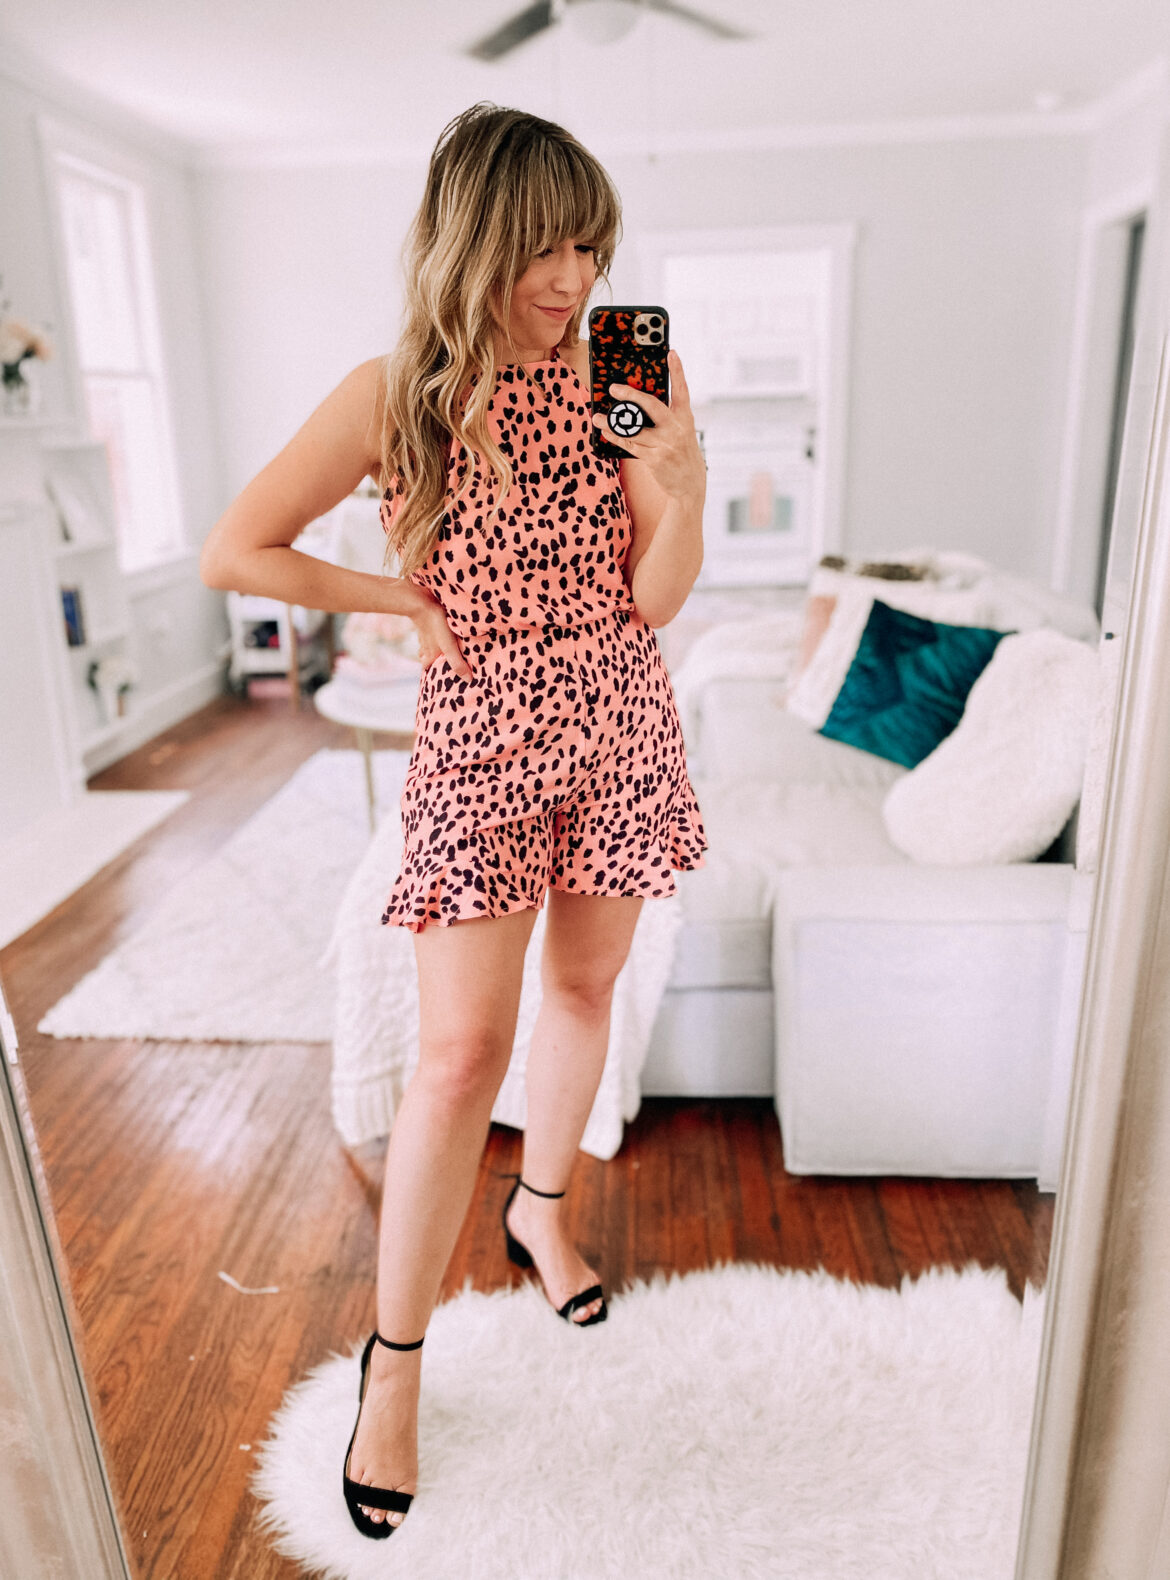 Summer romper from Amazon